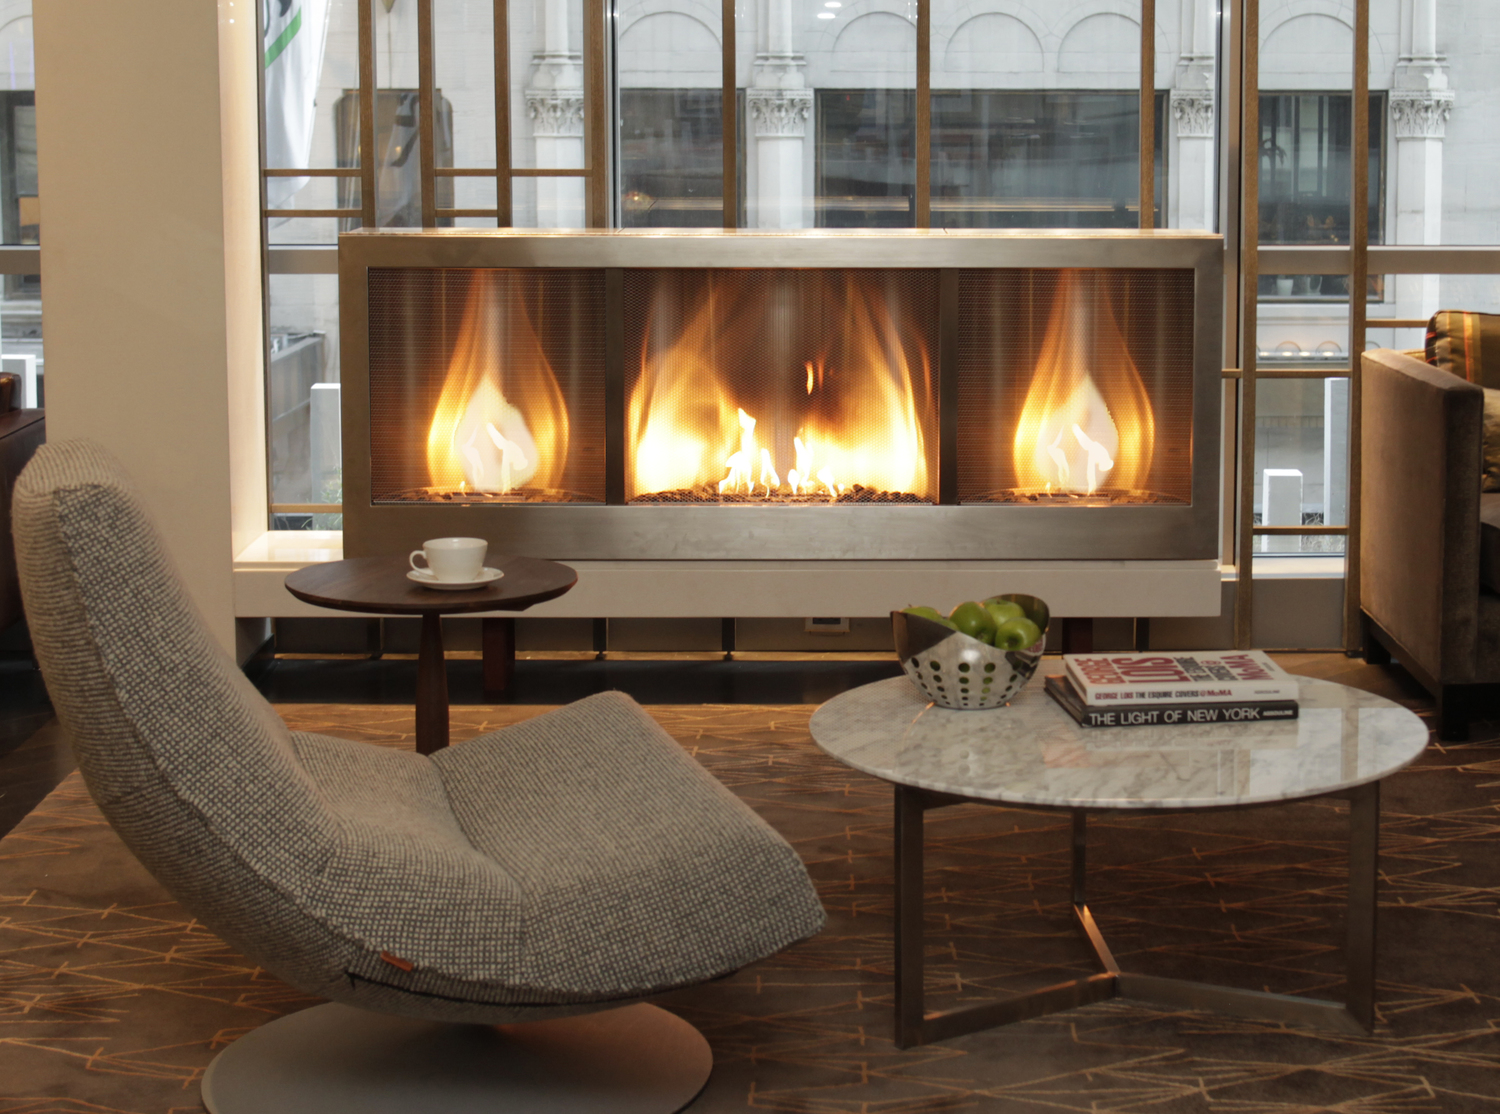 Fireplace Features Hearthcabinet Ventless Fireplaces Modern